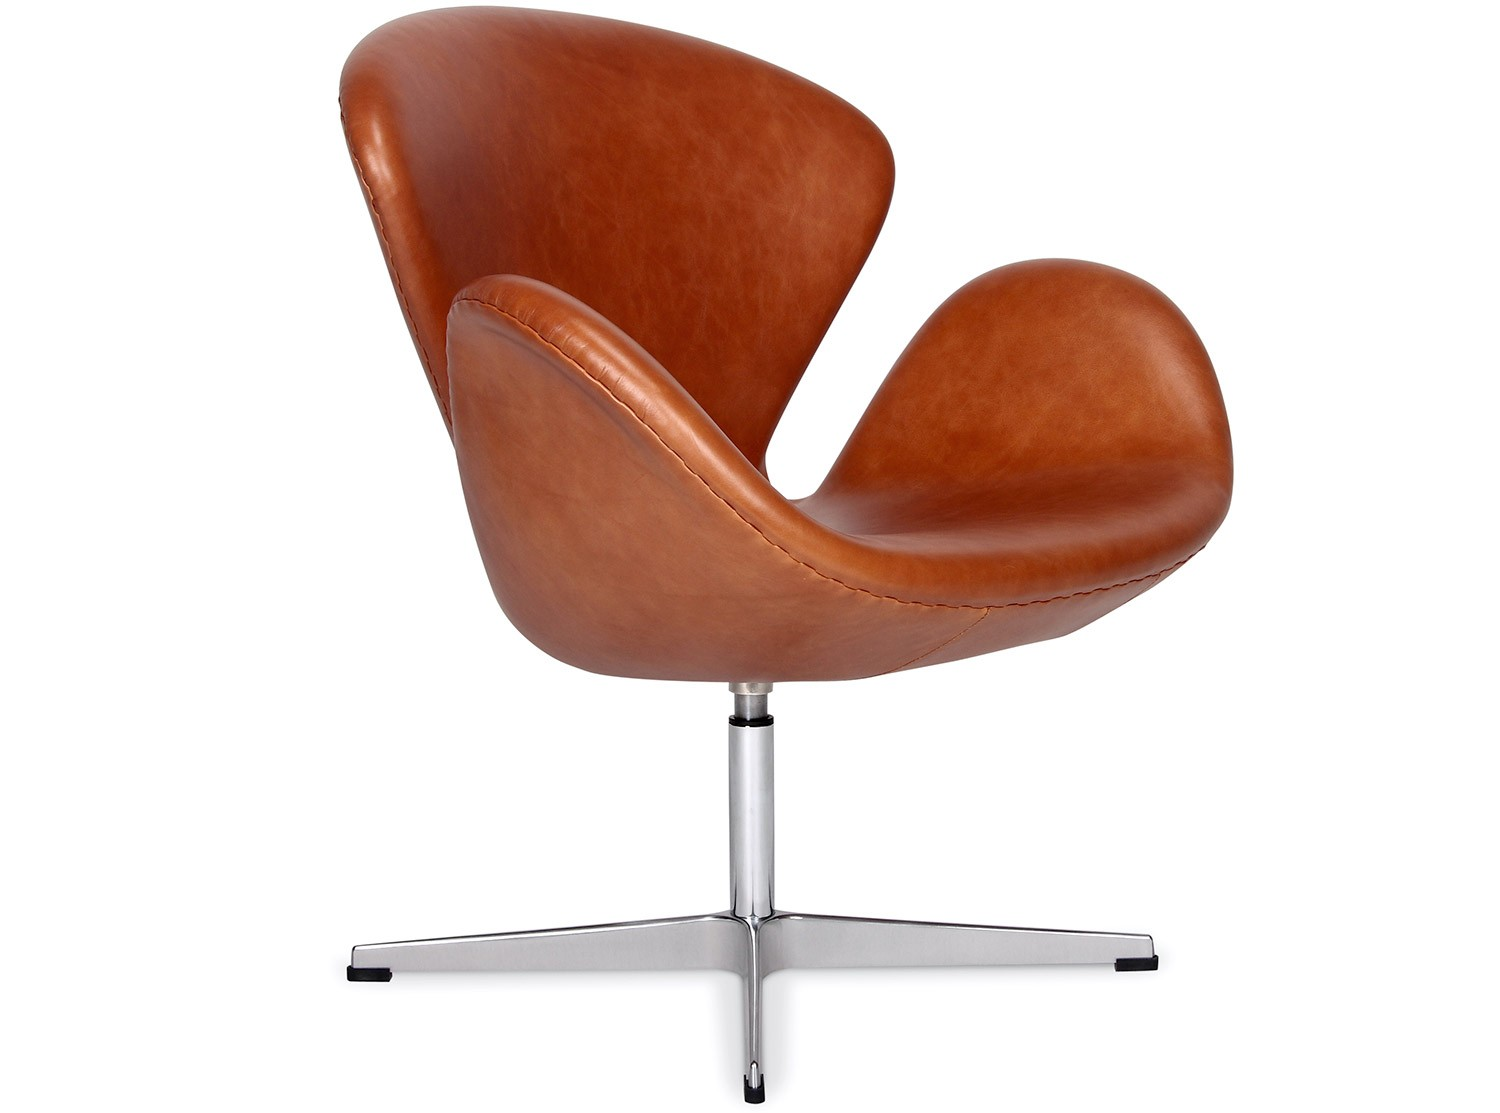 arne jacobsen chair